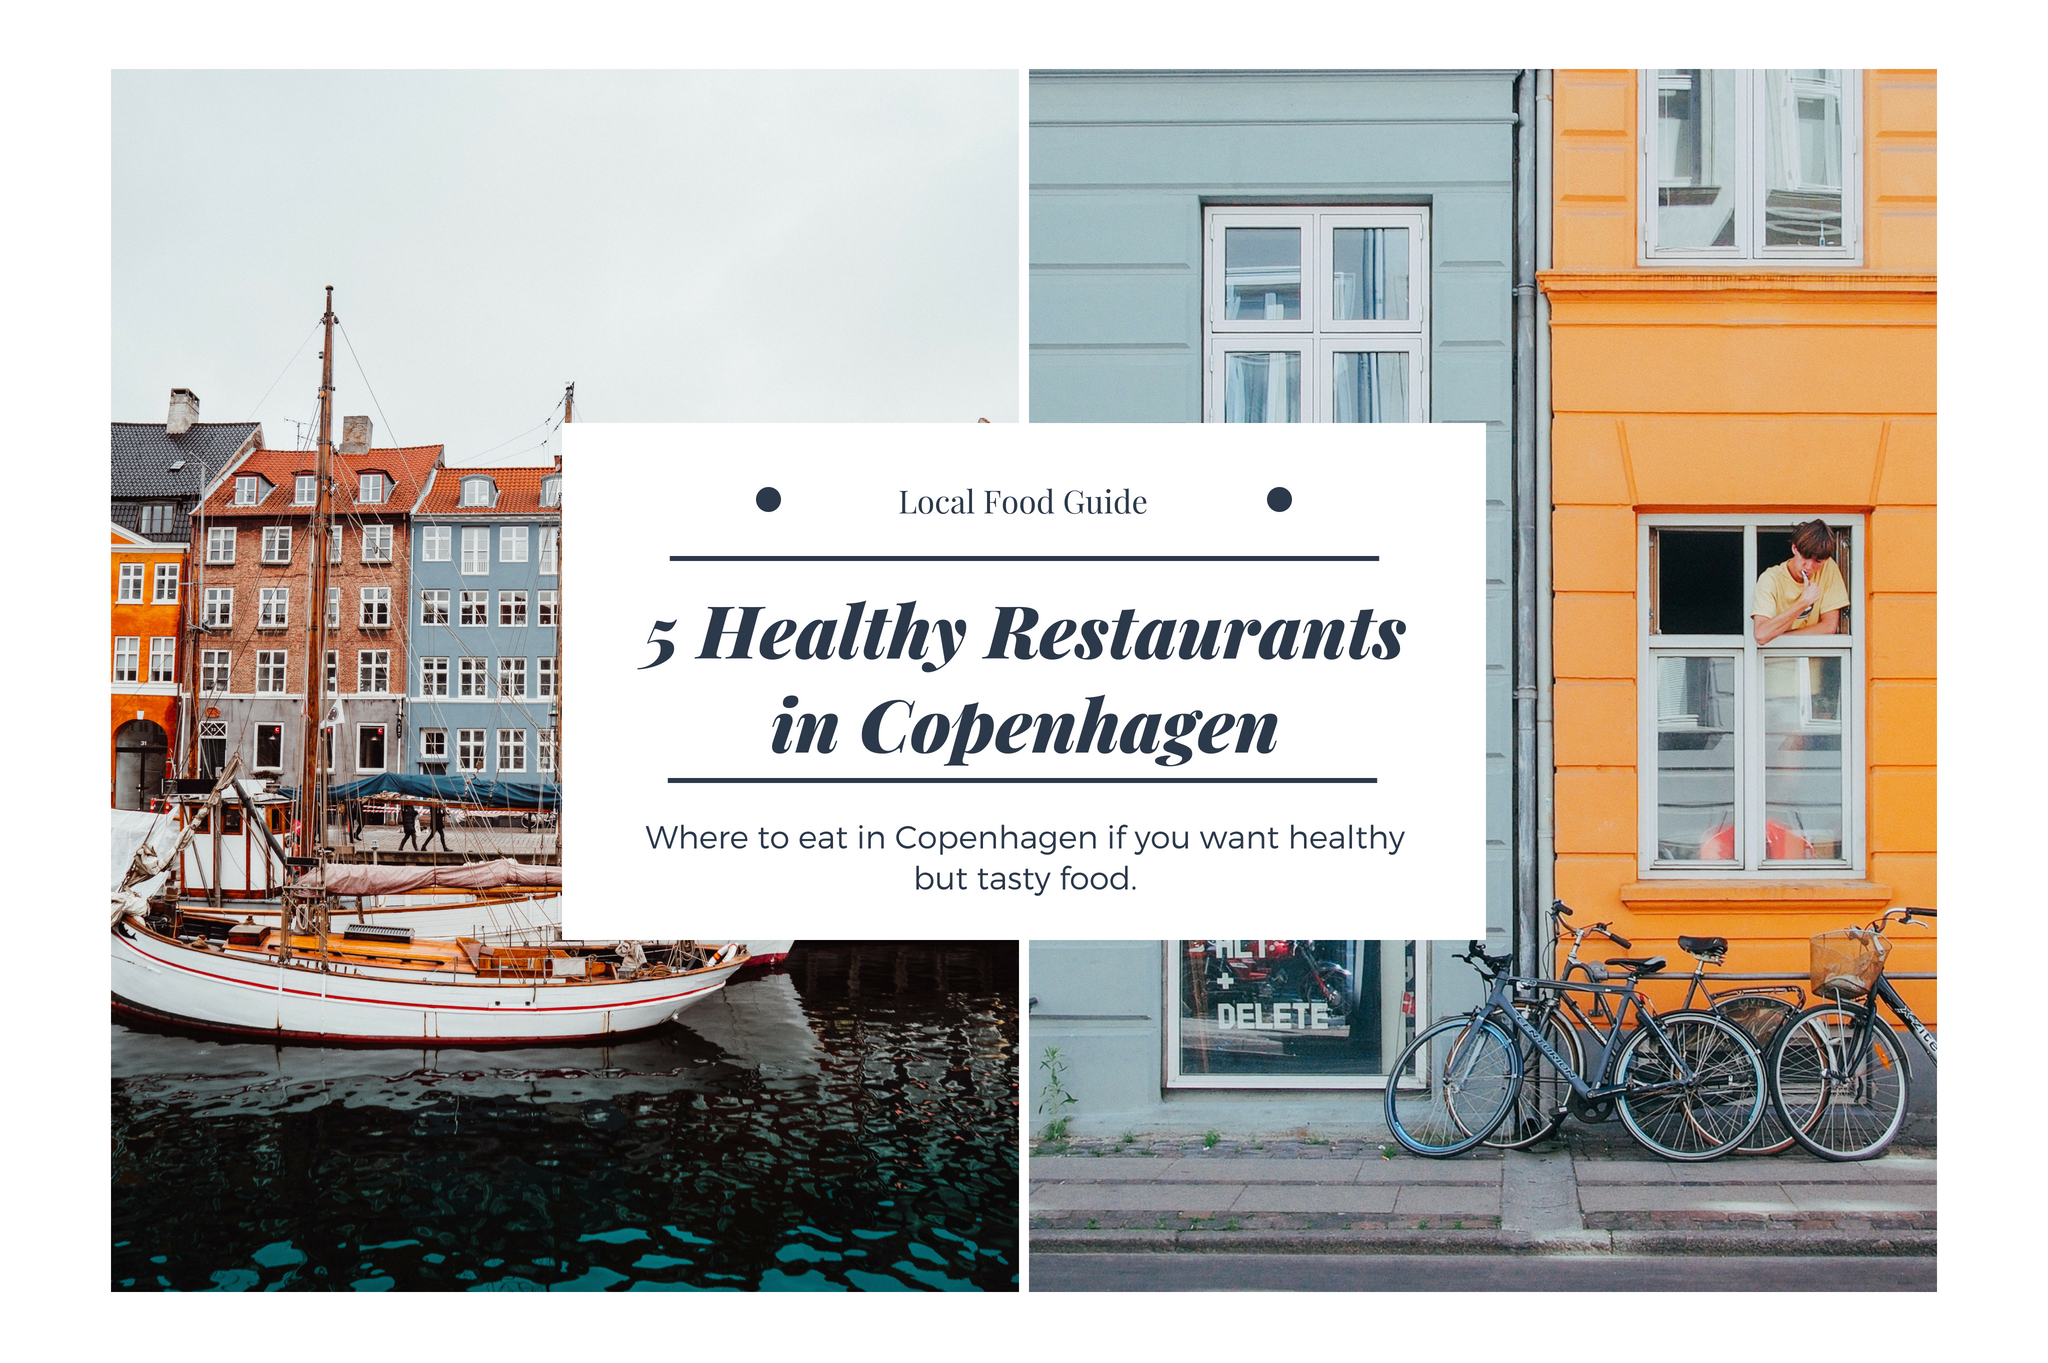 where to eat healthy in copenhagen 42 raw natur tørst palæo torvehallerne kcal factory vegan glutenfree laktosefree food food guide